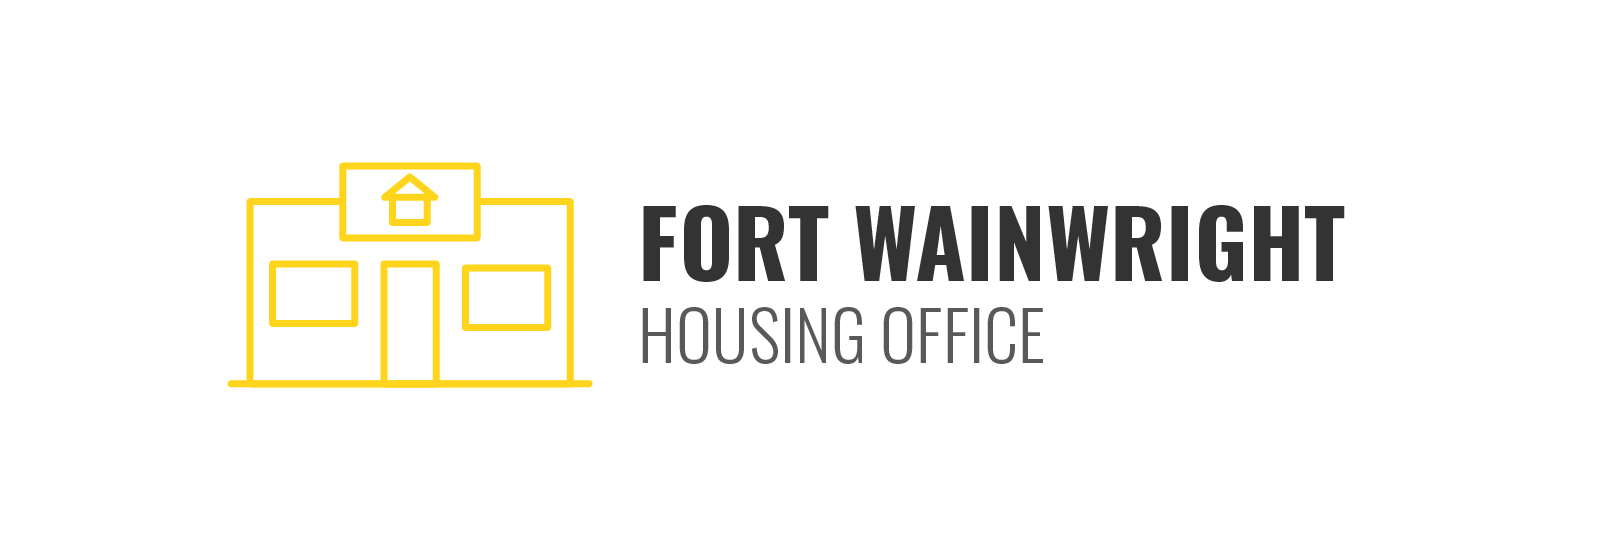 Image Alt Text: Fort Wainwright Housing Office